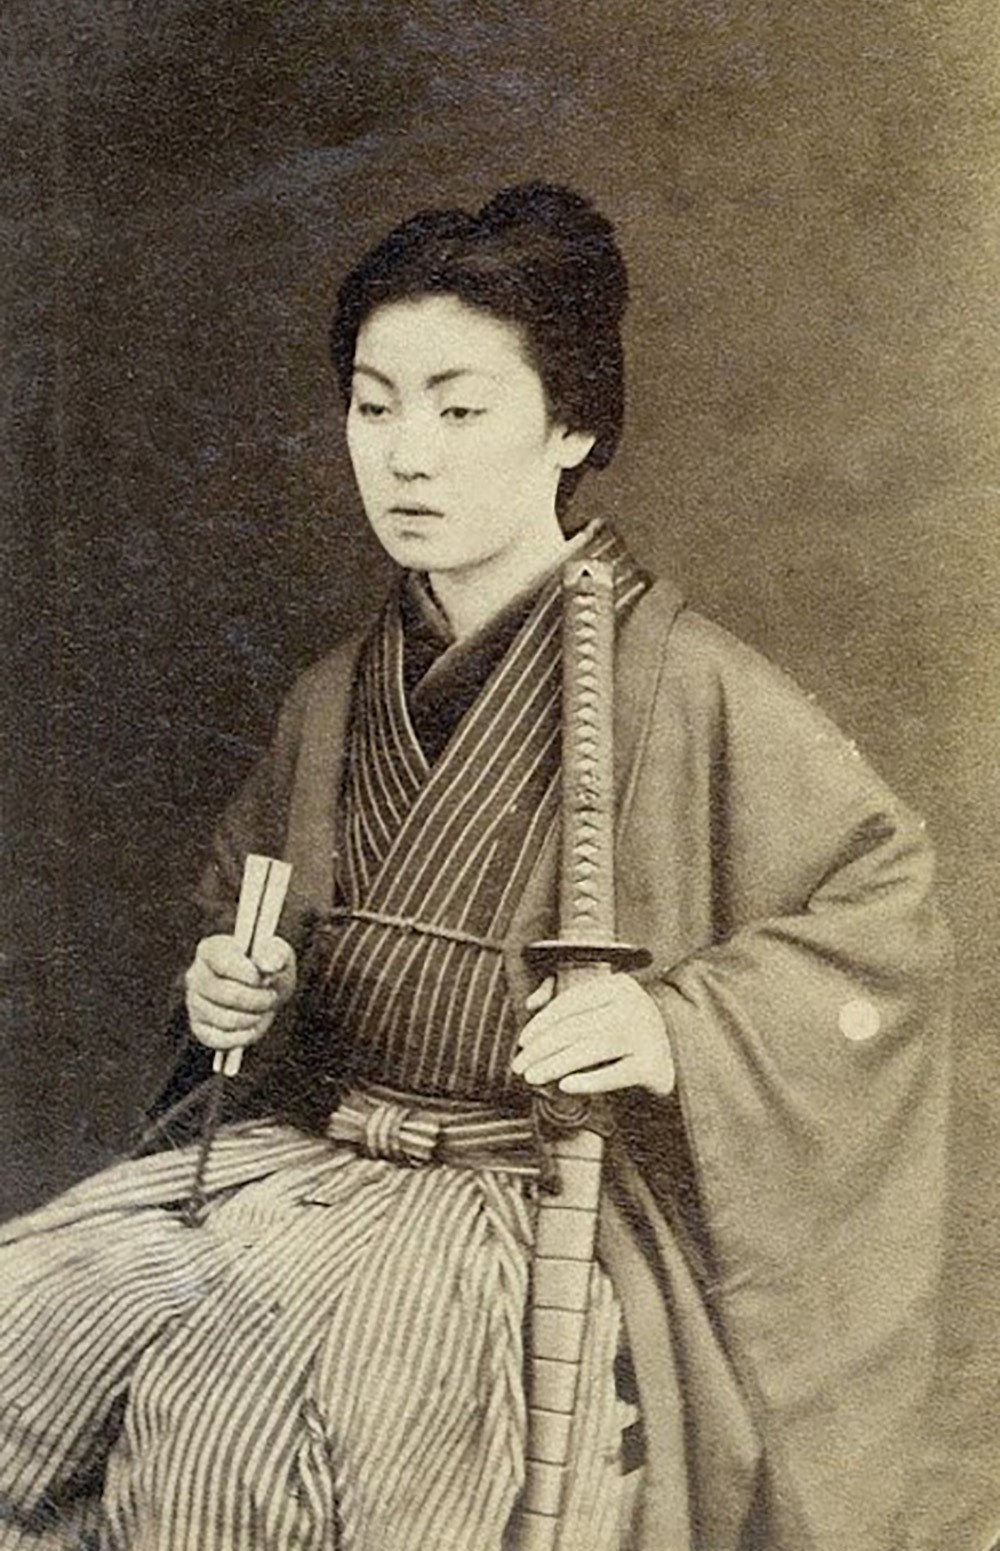 Female samurai with a traditional sword